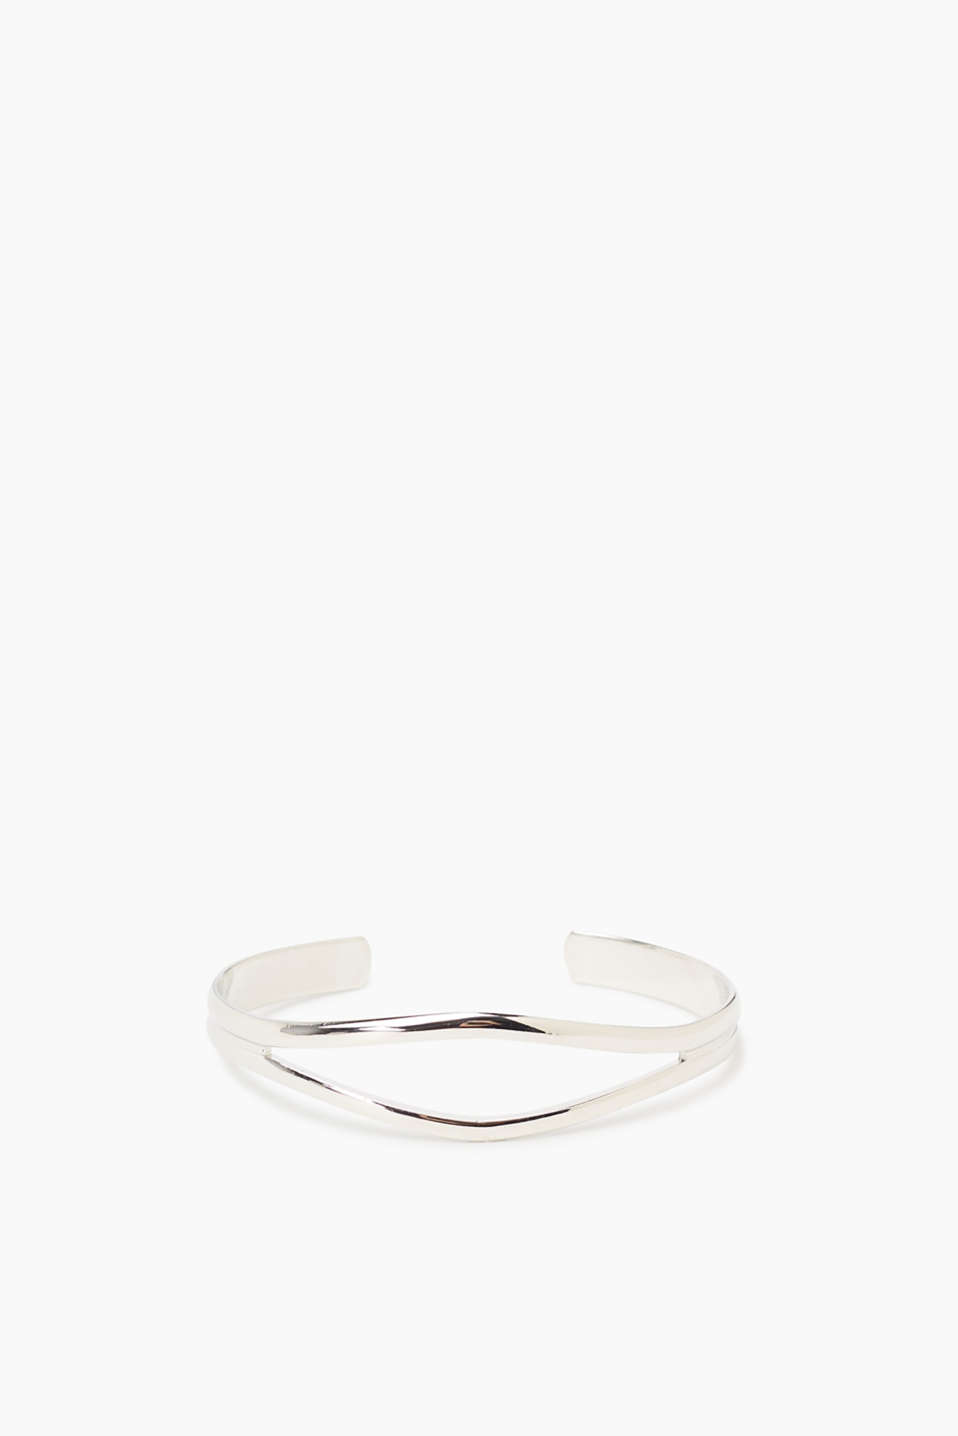 Metal bangle in a clean design